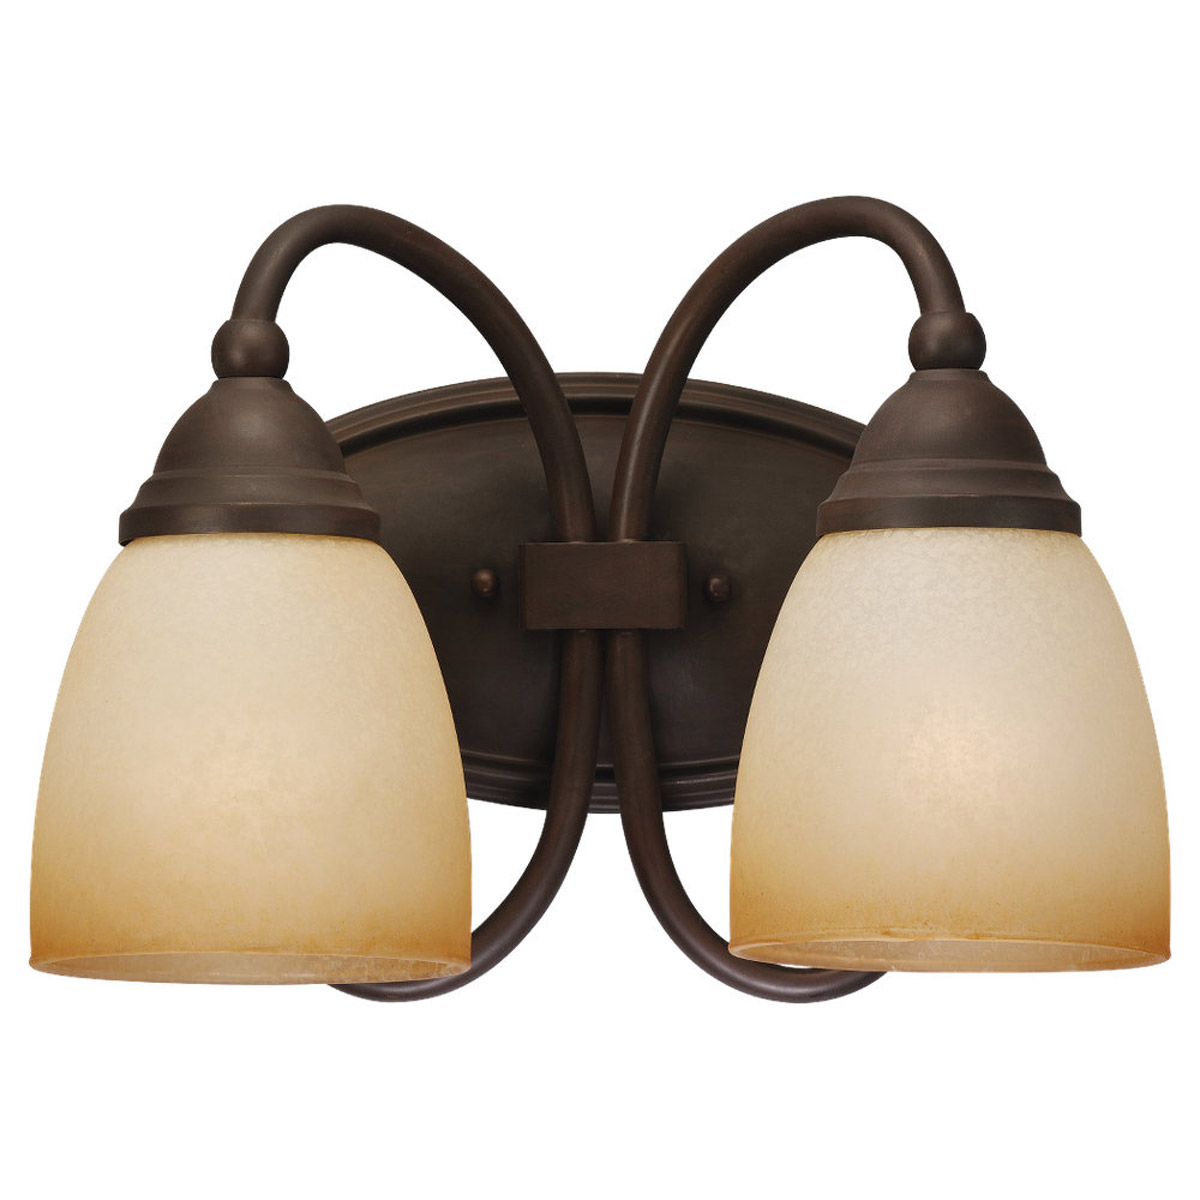 Sea Gull Lighting Montclaire 2 Light Bath Vanity in Olde Iron 44105-72